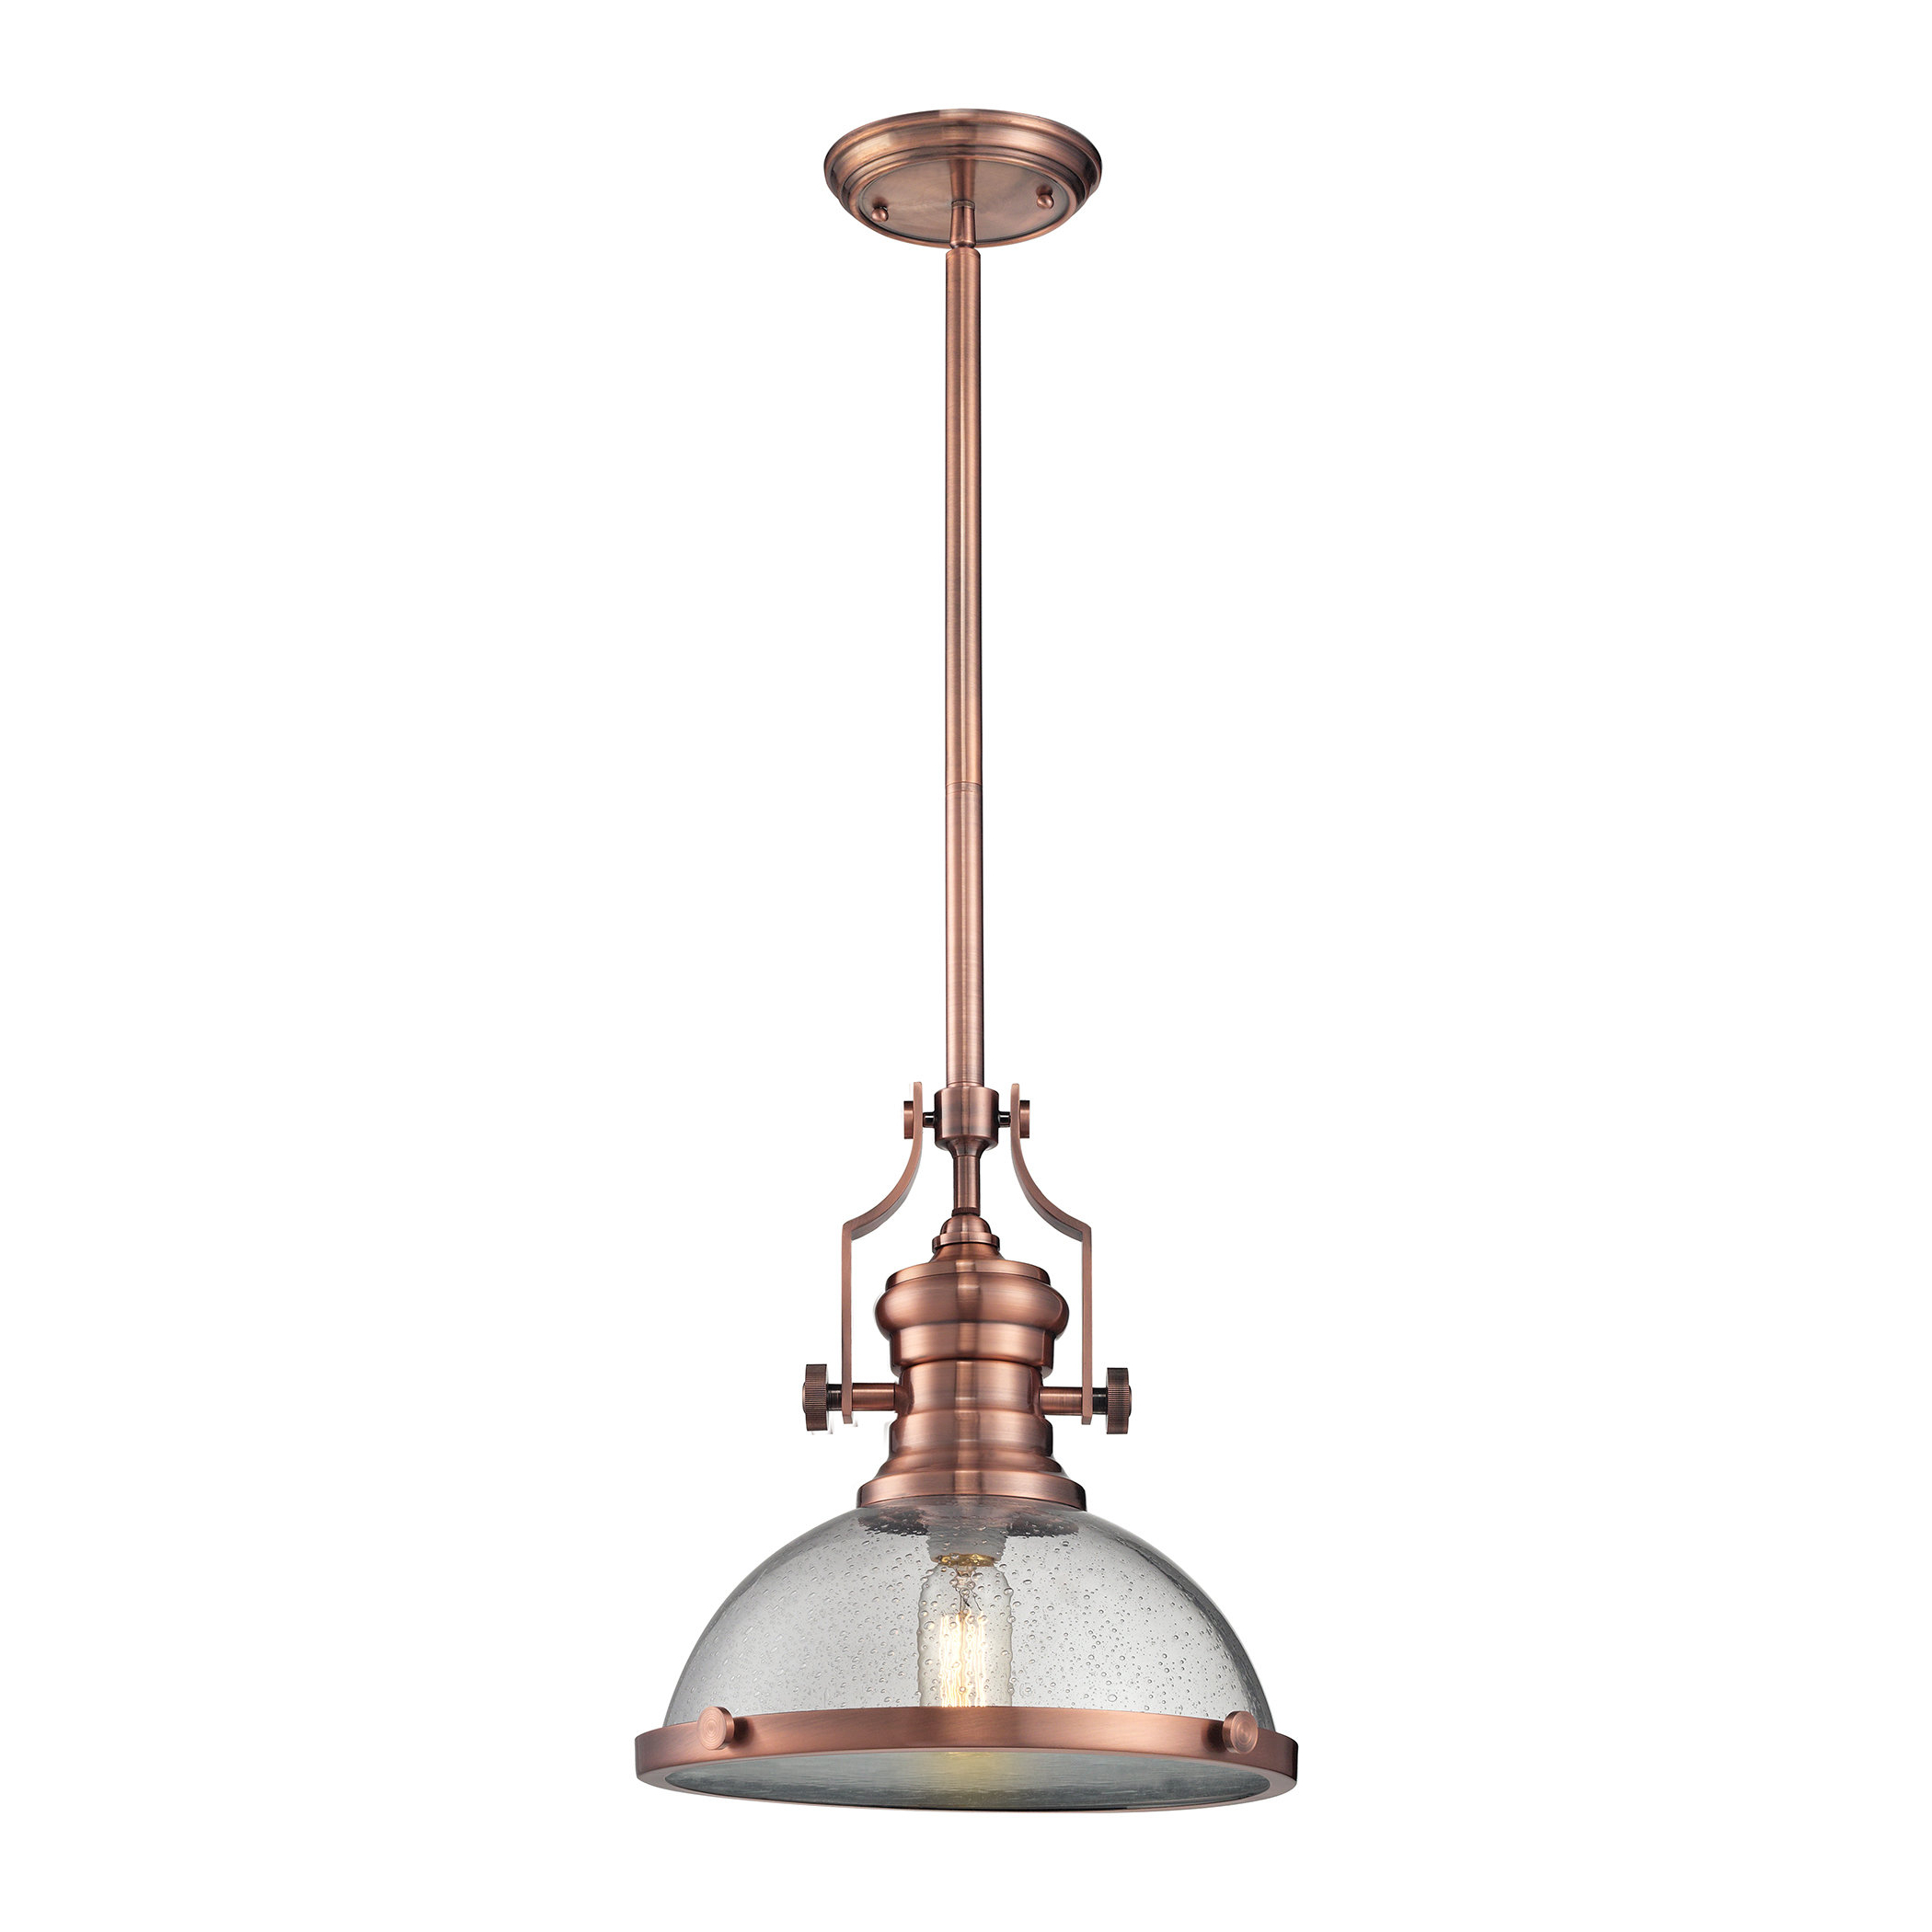 Priston 1 Light Single Dome Pendant With Regard To Fashionable Southlake 1 Light Single Dome Pendants (View 13 of 20)